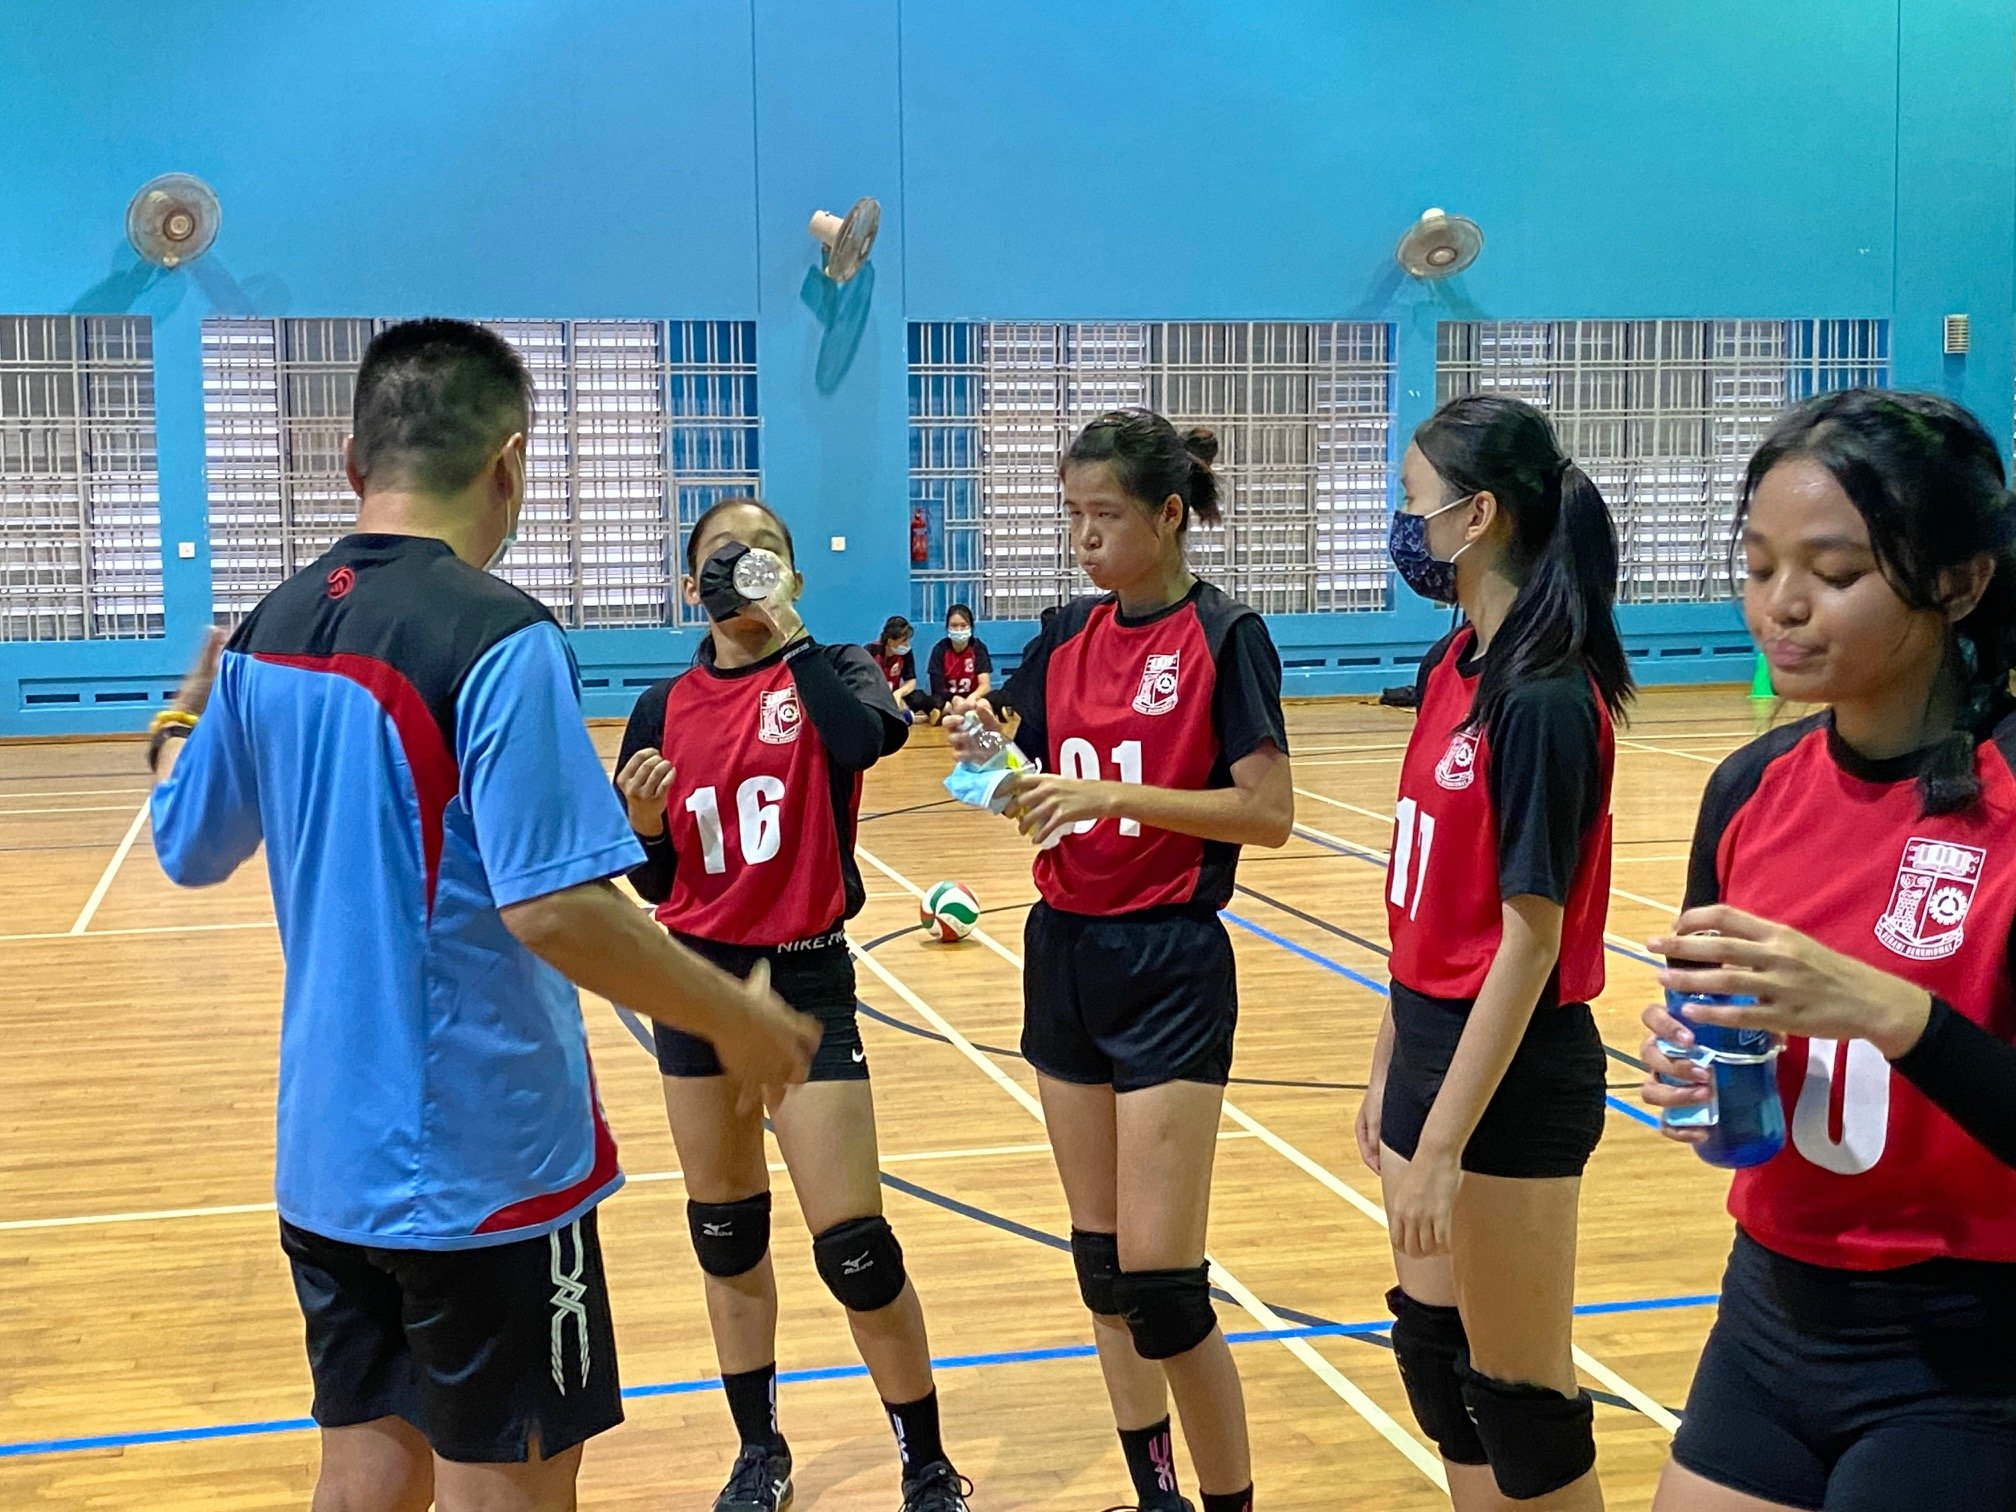 NSG South Zone B Div girls volleyball final - Queenstown (red) v Queensway (purple) 3